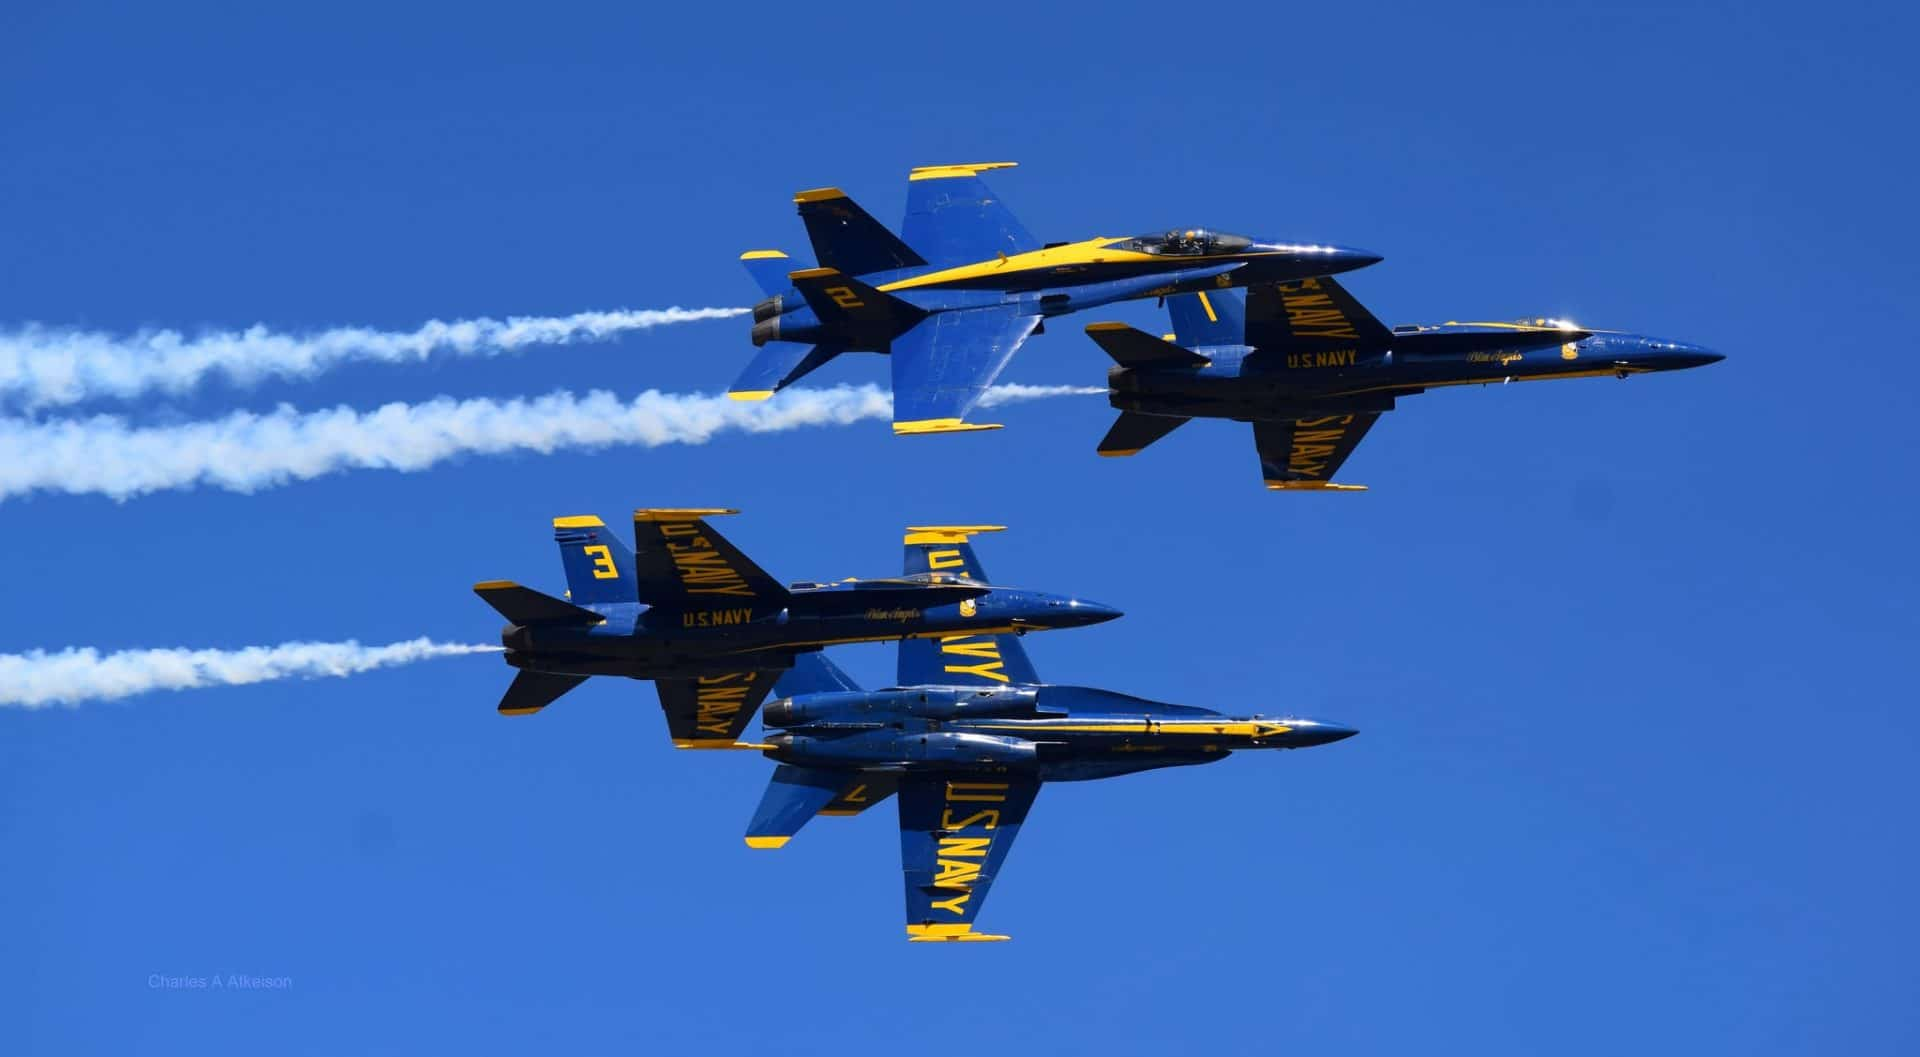 6b692f5a48e U.S. Navy s Blue Angels Inspire Young Adults in STEM Careers ...